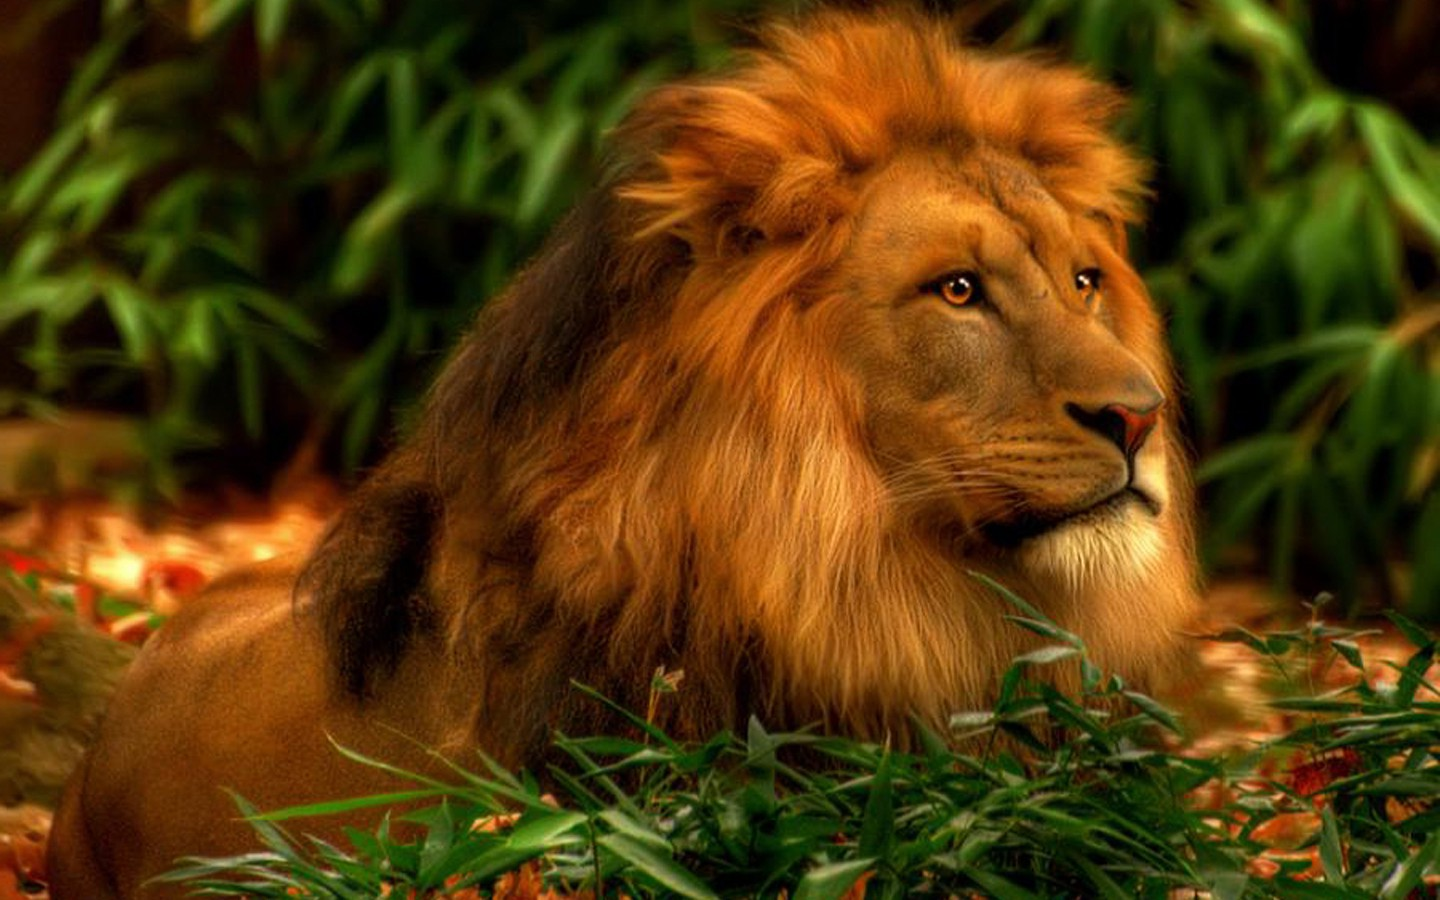 Animals Lion Wallpapers Hd Desktop And Mobile Backgrounds: Black Lion HD Wallpaper